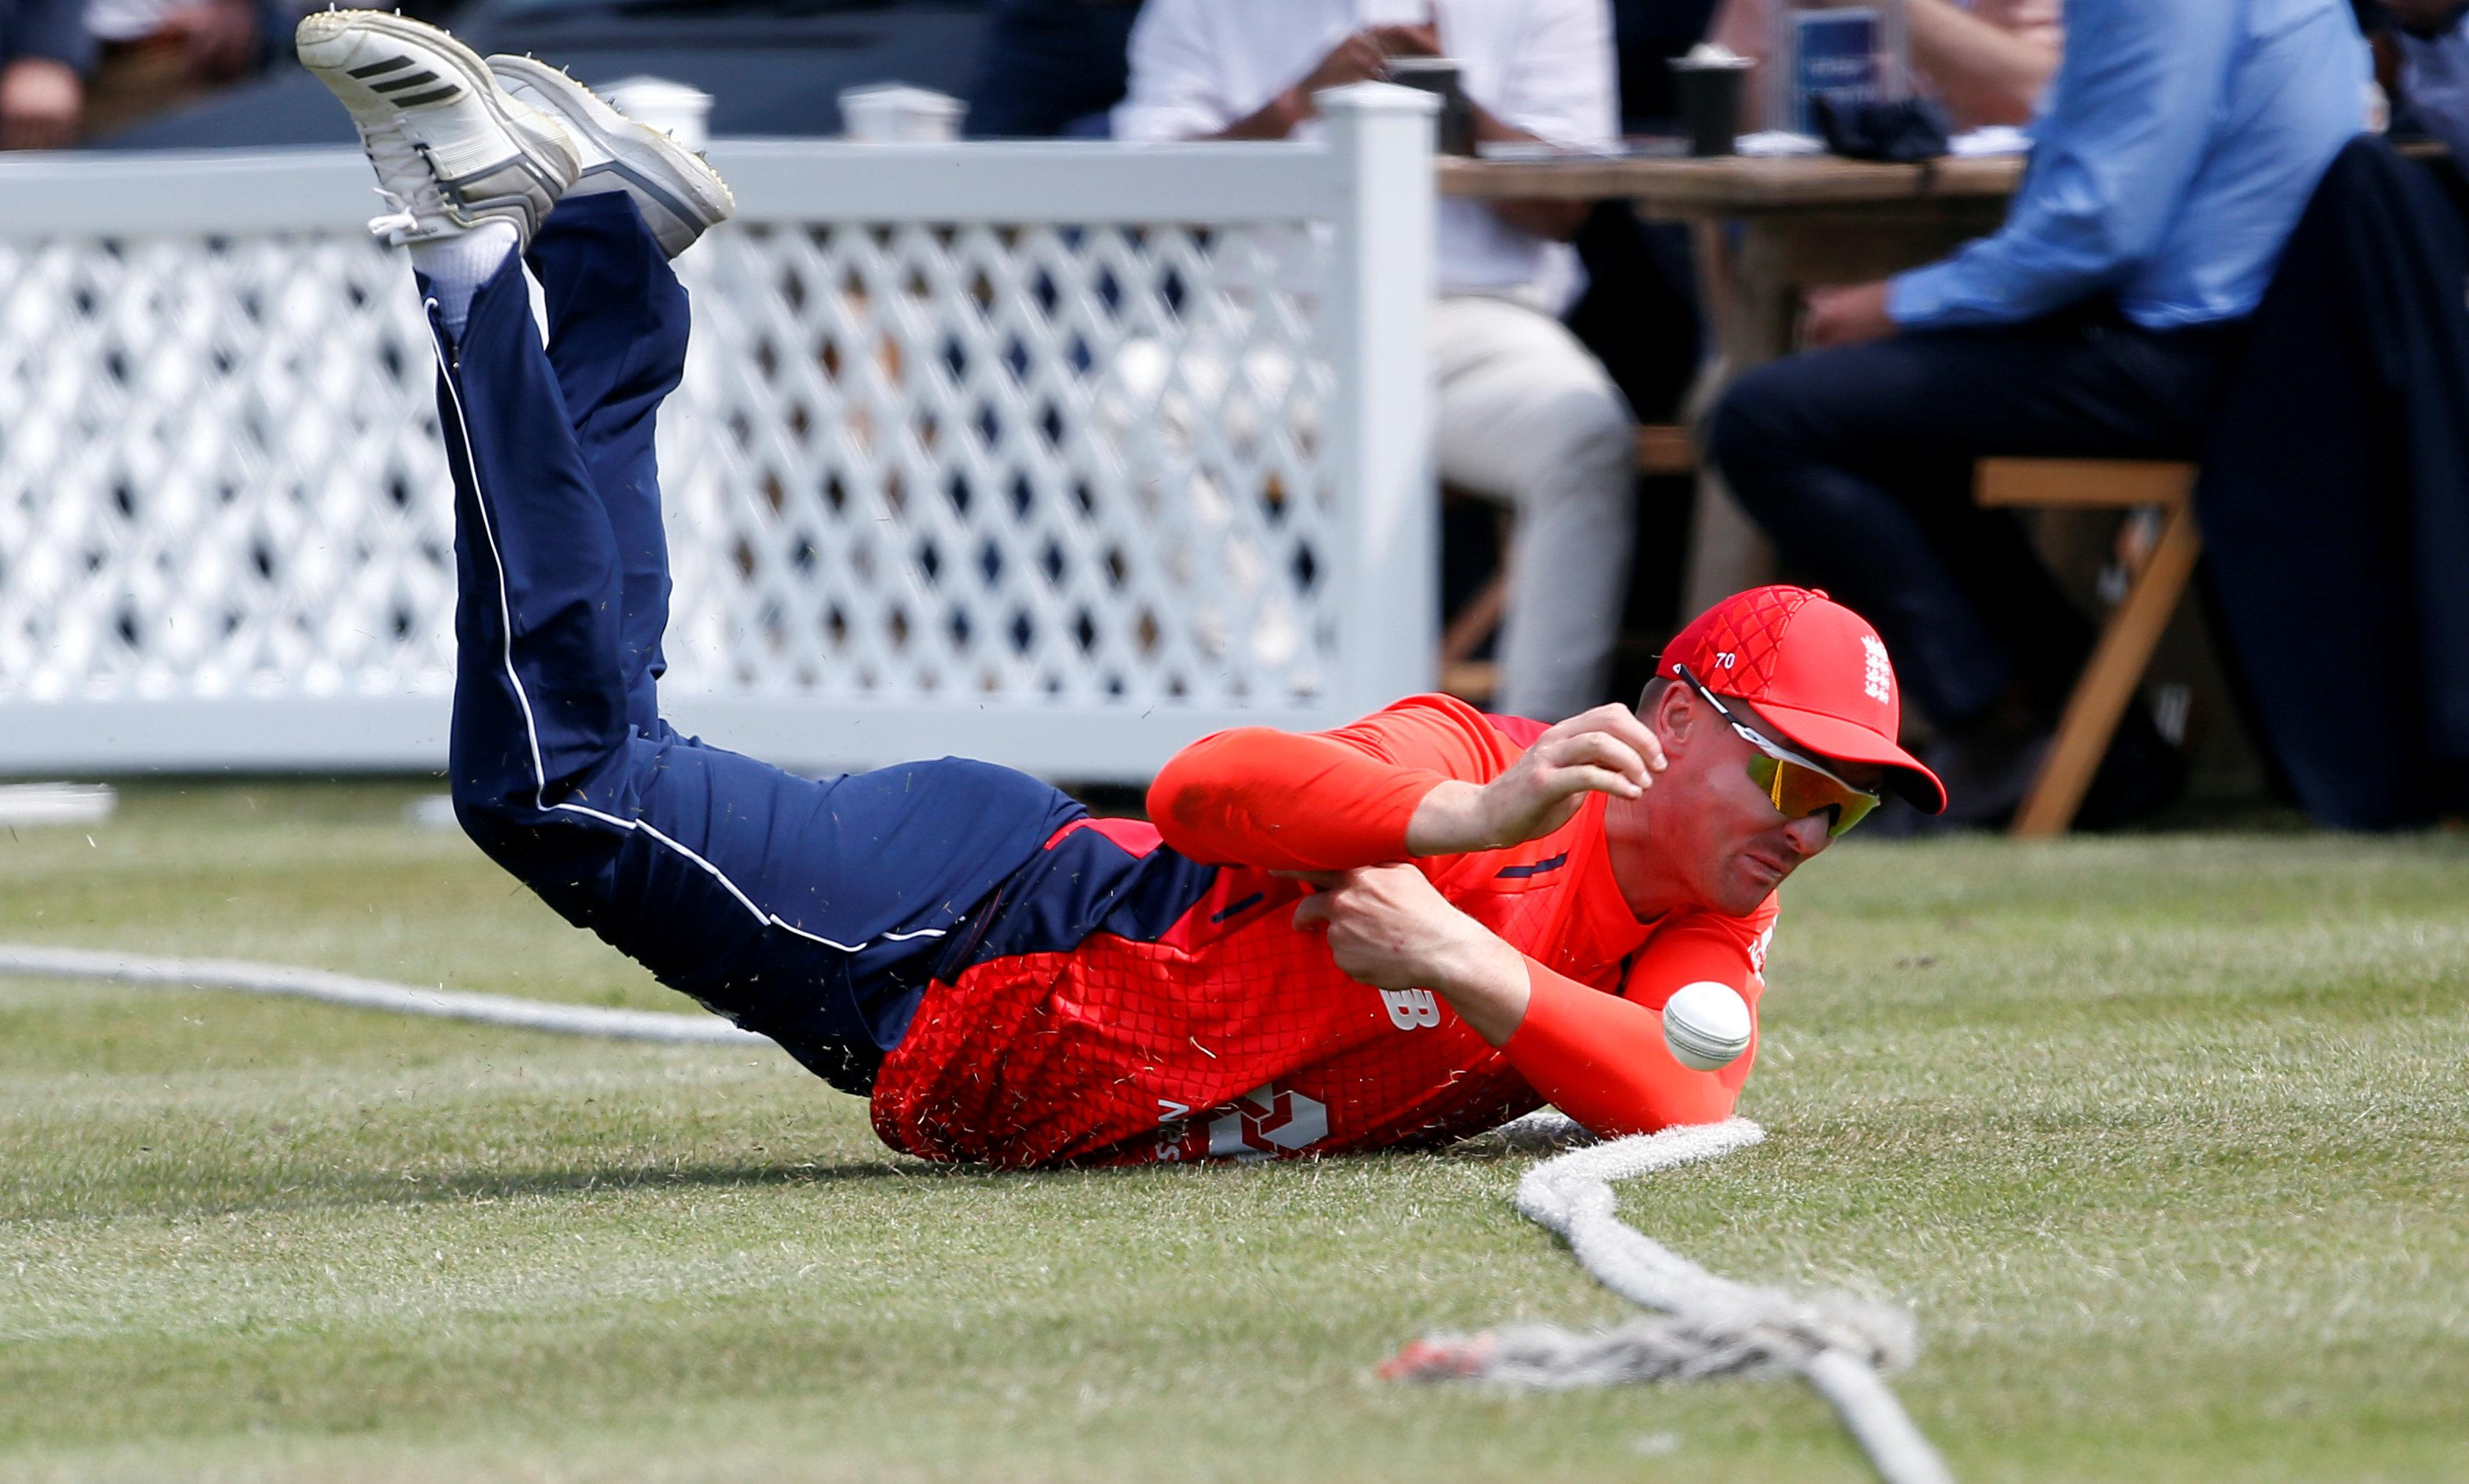 England star Jason Roy dives for the ball during the One Day International